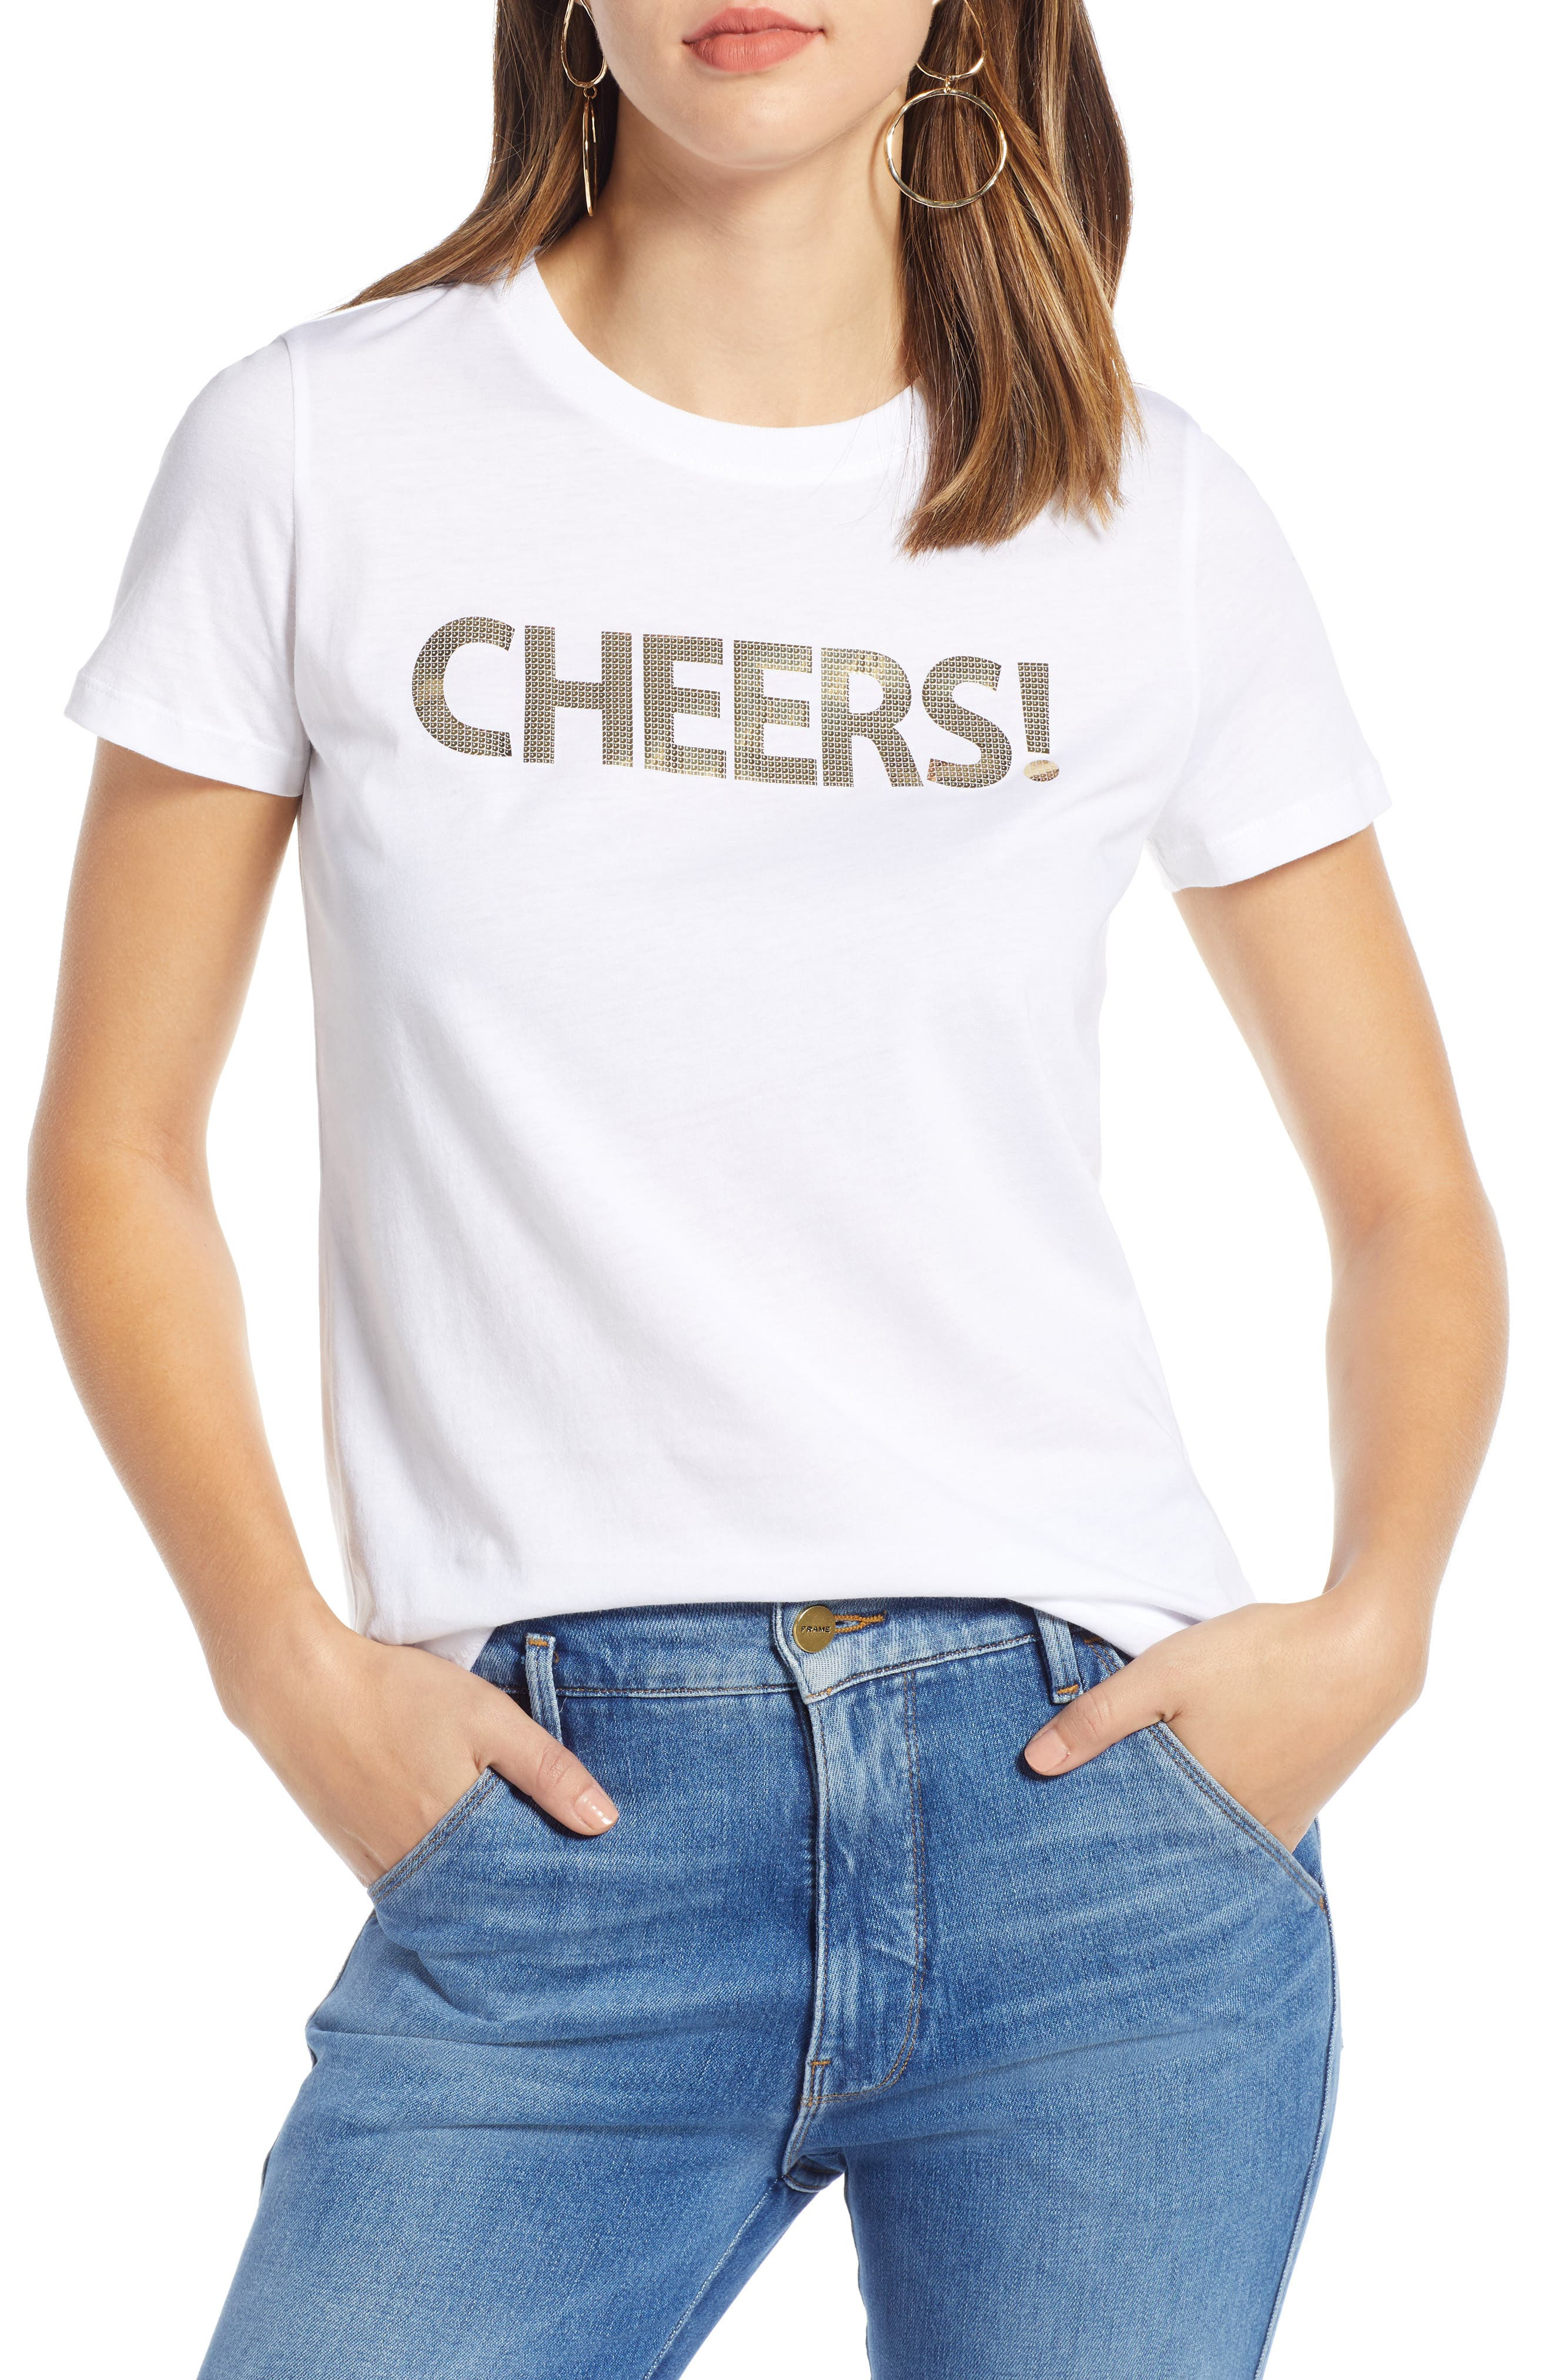 Short Sleeve Graphic Tee,                             Main thumbnail 1, color,                             WHITE- GOLD CHEERS